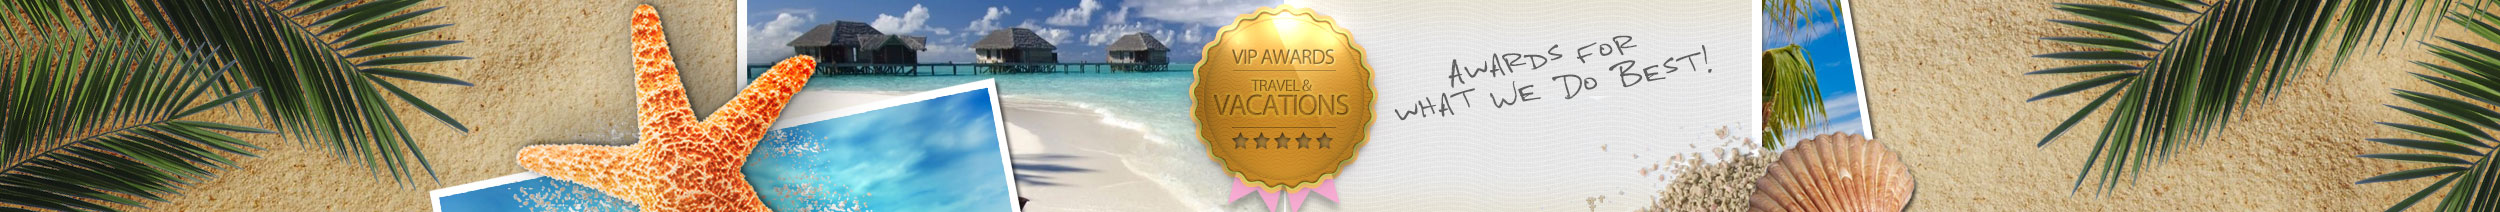 Travel Weekly Awards